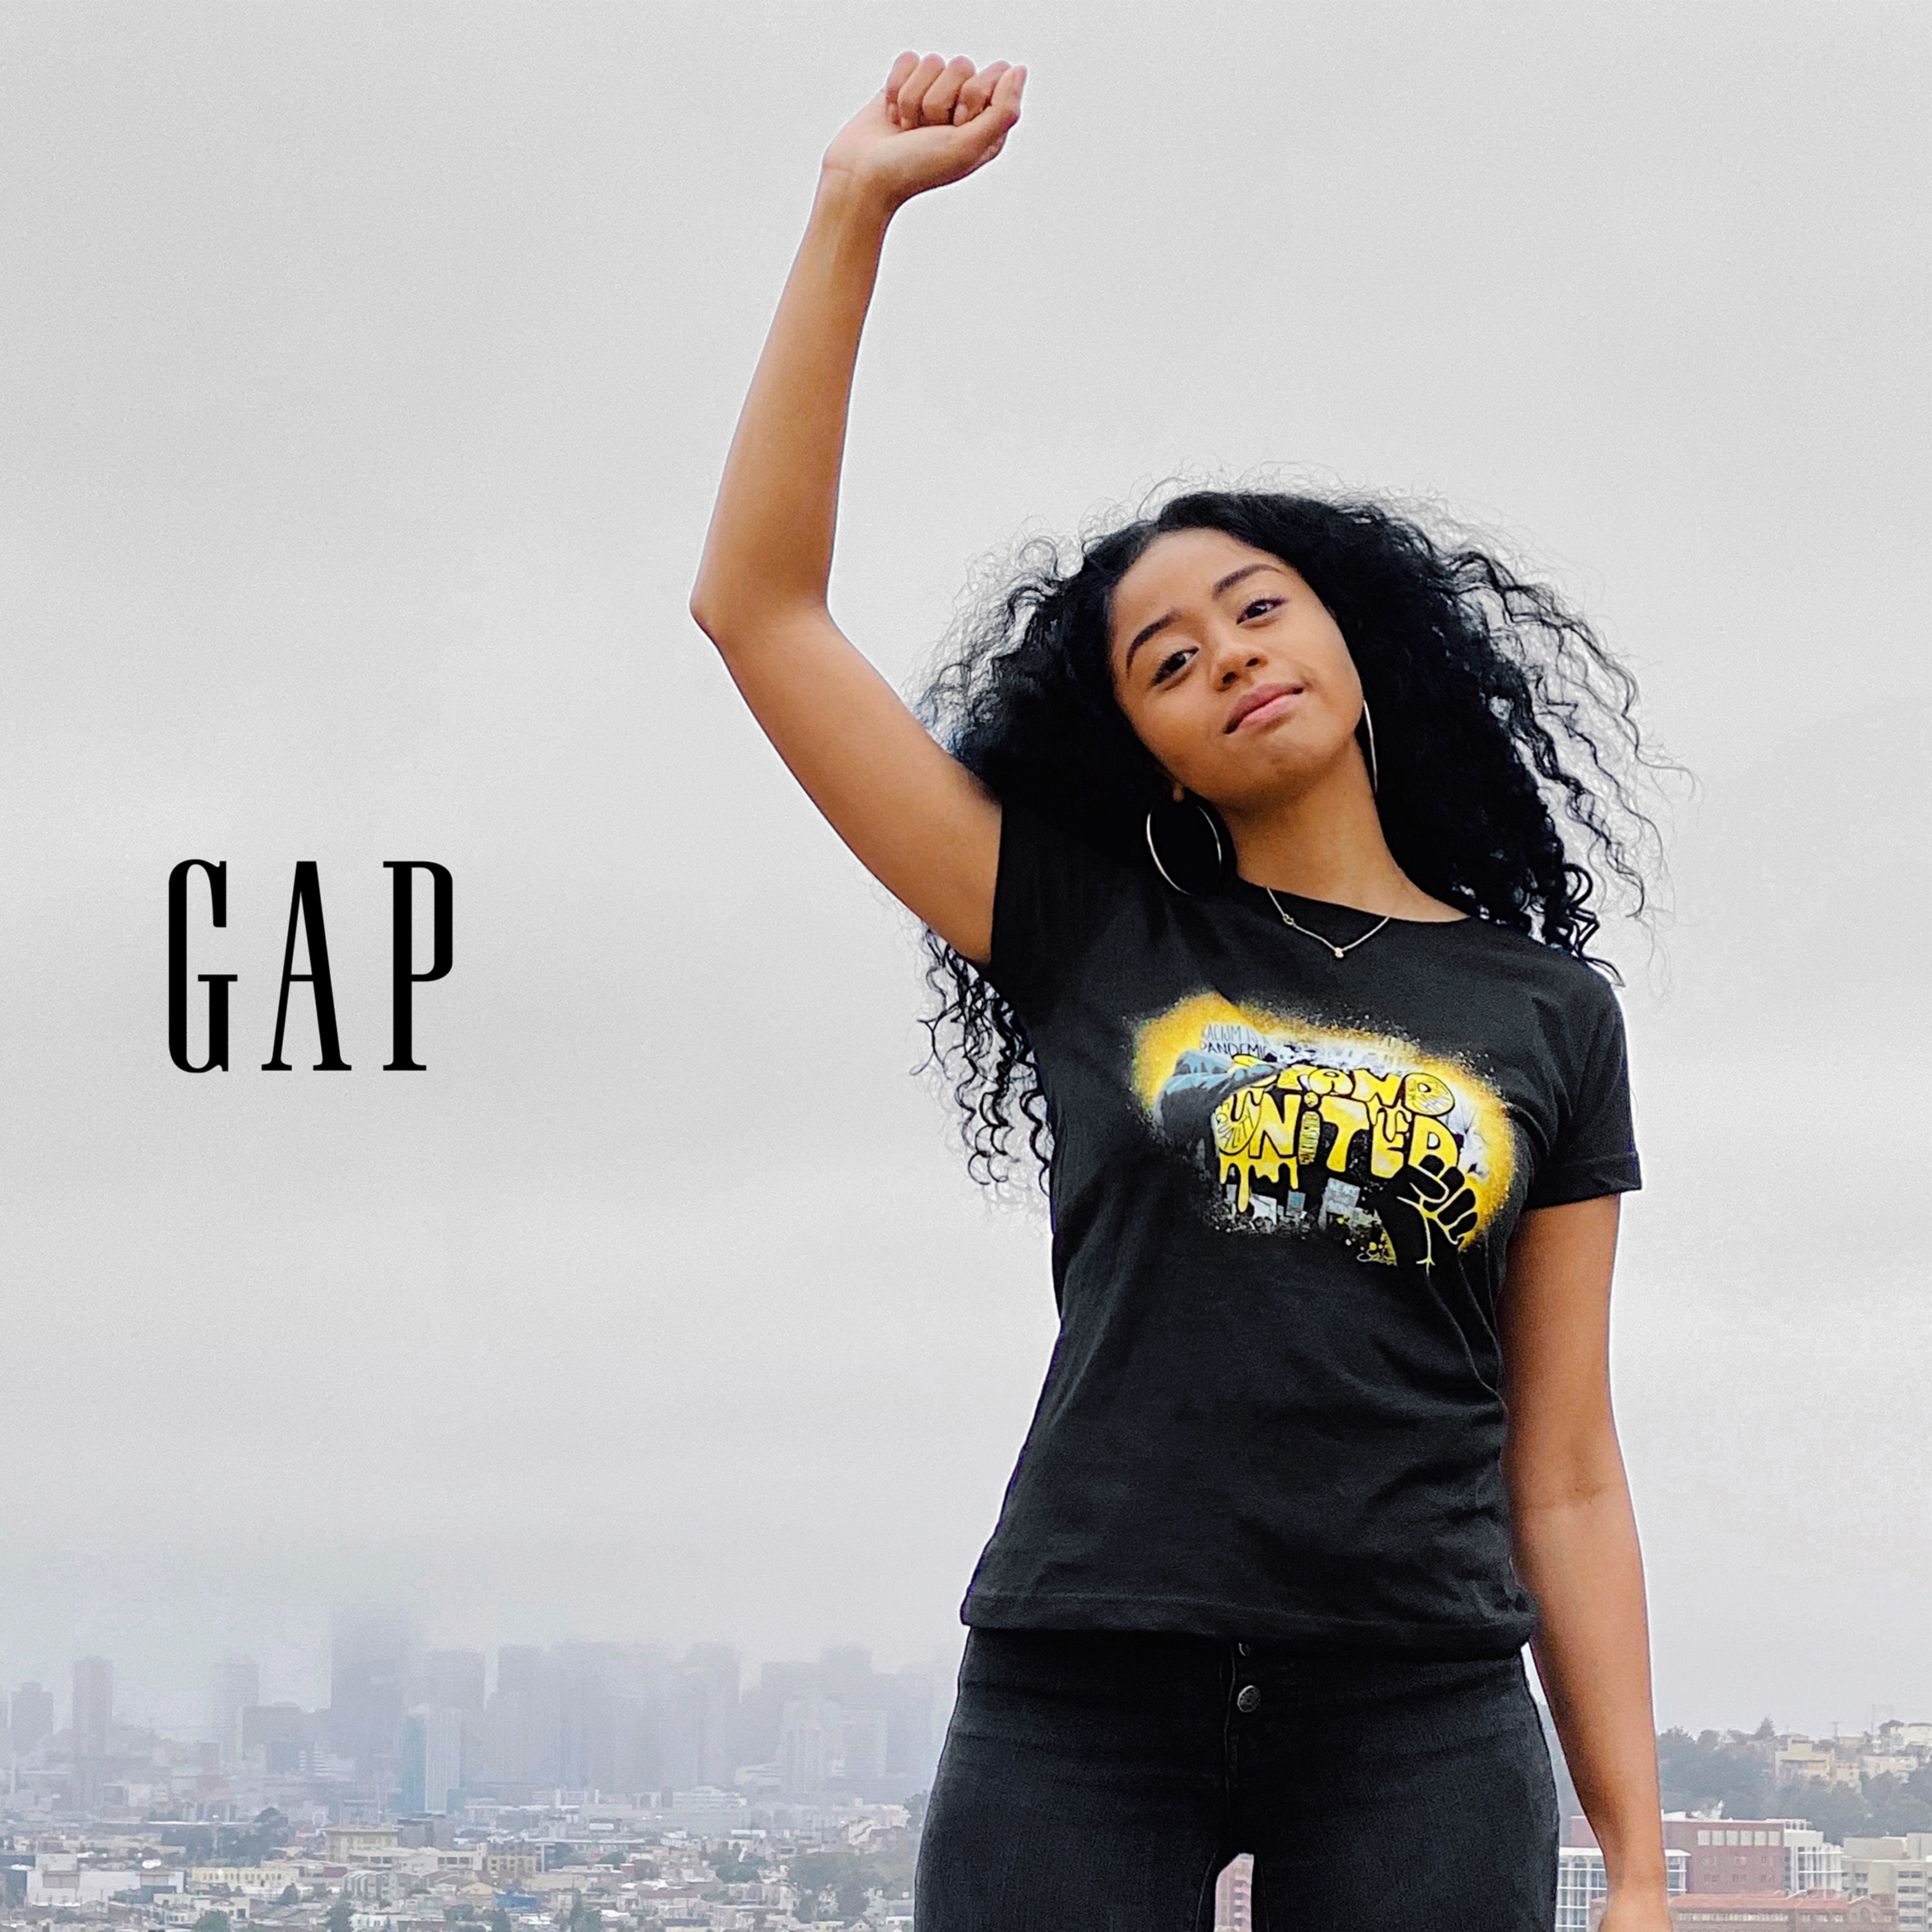 Stephennie Factor, Artist and member of Gap Inc.'s African American Networking Group